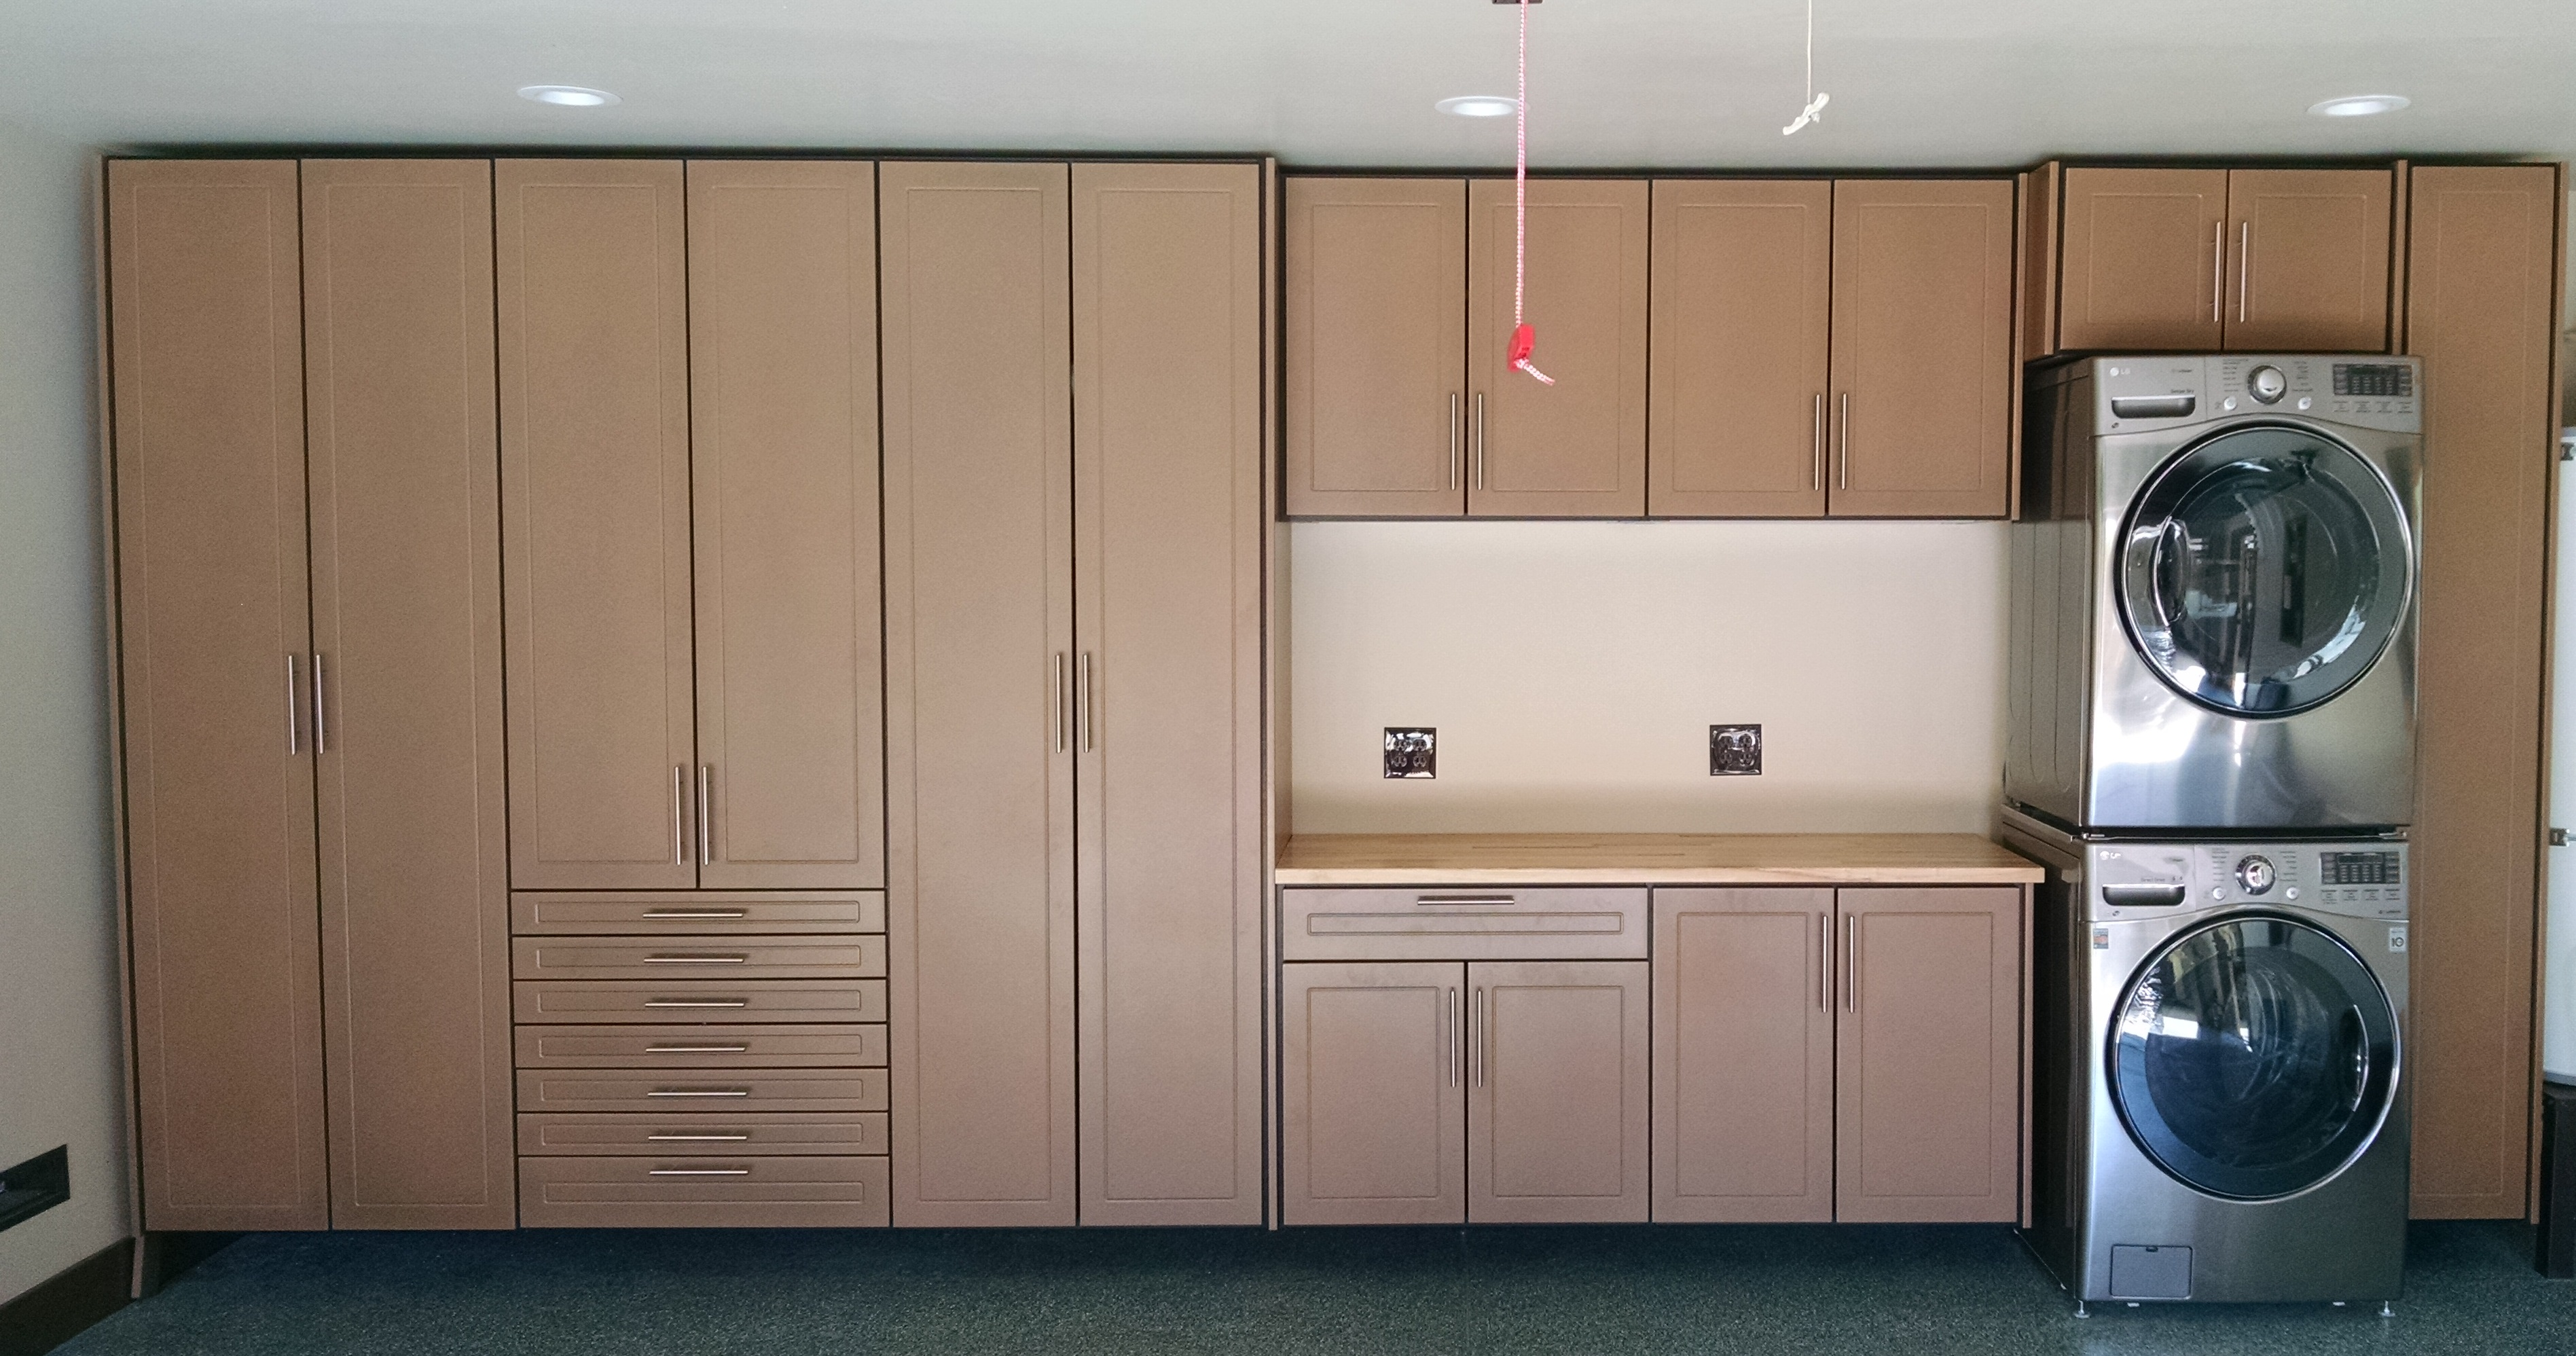 Easy Customization For Any Space With Redline Cabinetry